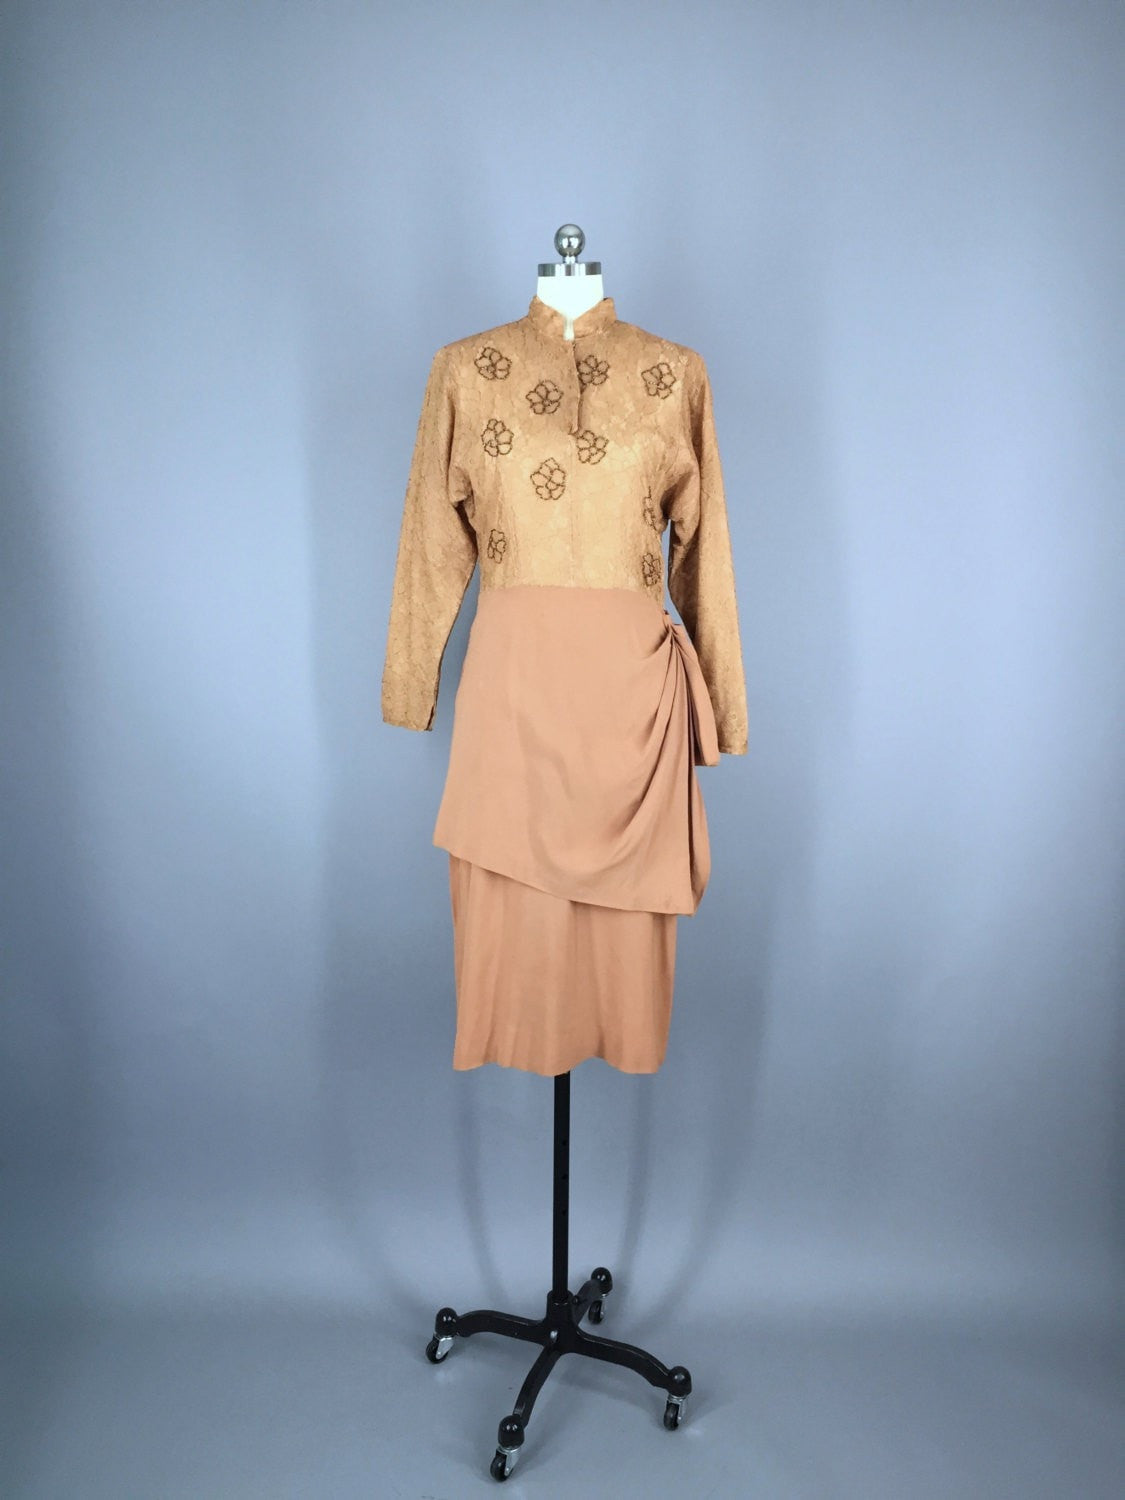 Vintage 1940s Caramel Brown Beaded  Lace Cocktail Dress Dress ThisBlueBird - Sale